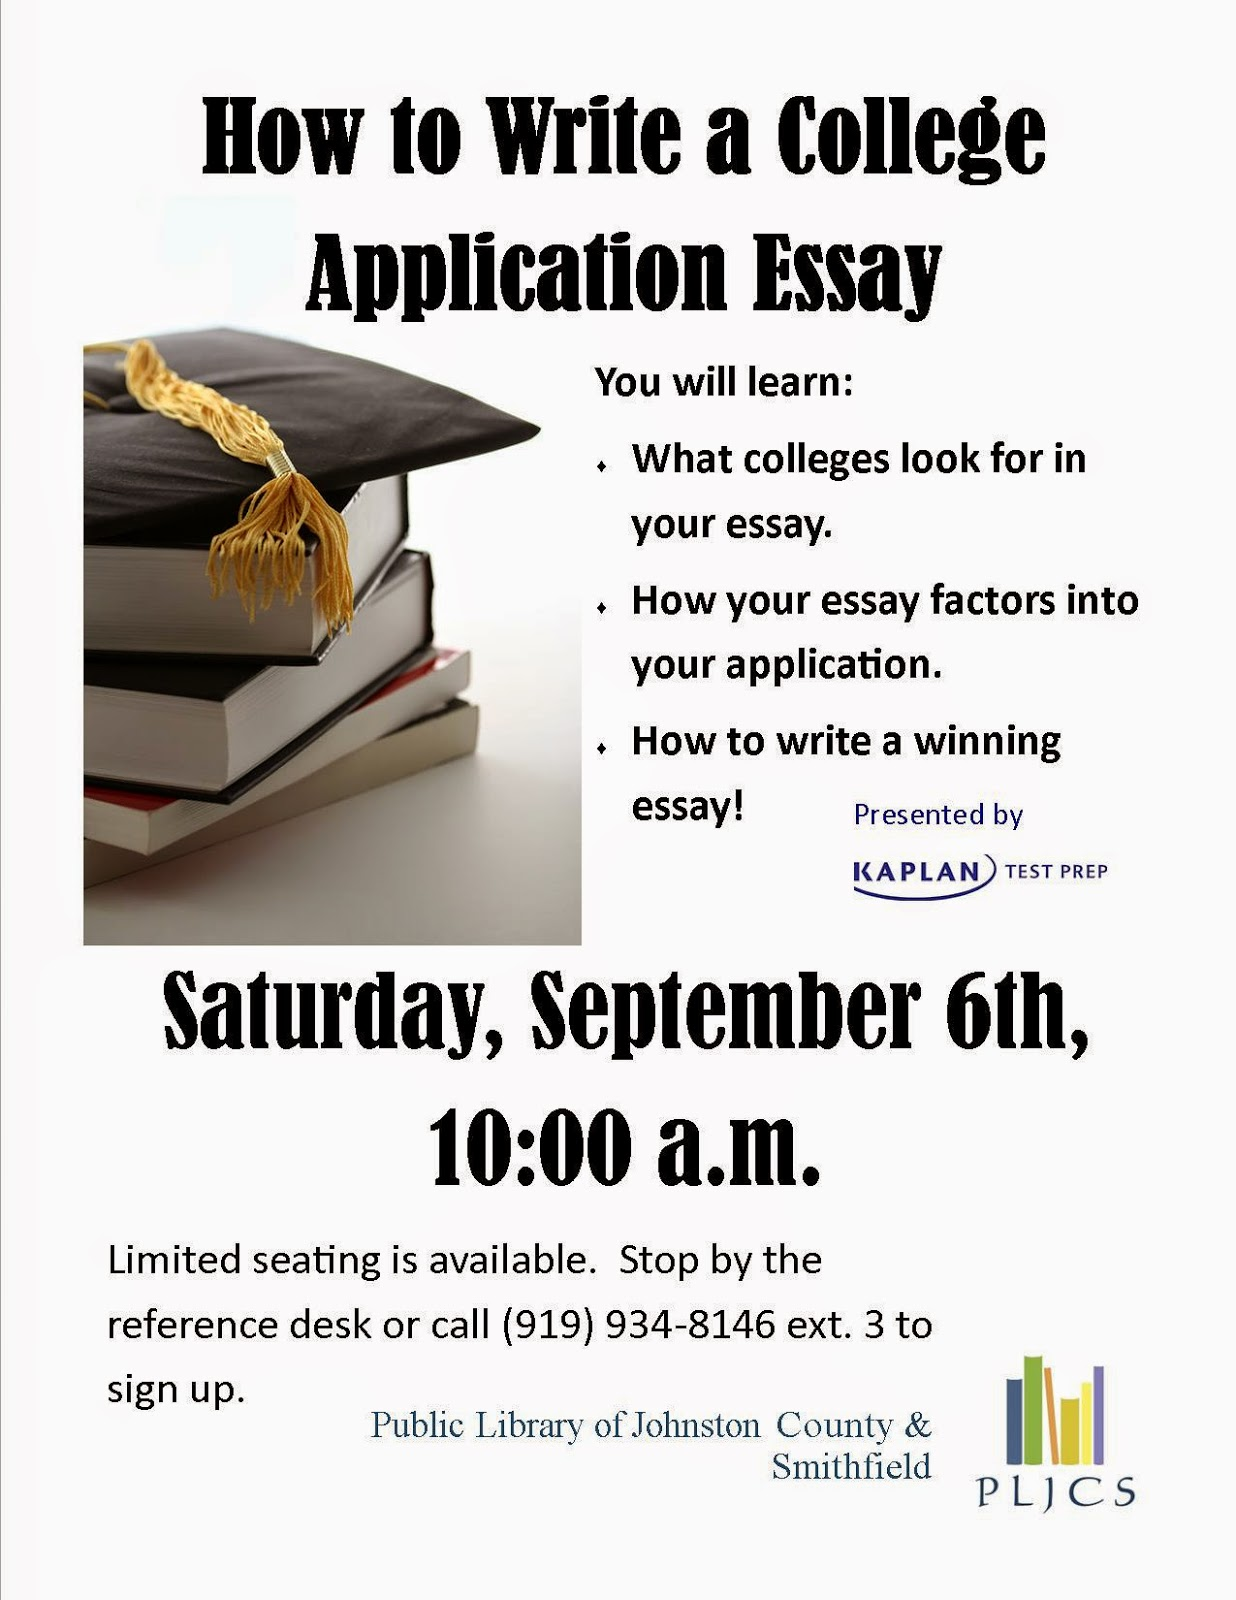 20/27 2012: Need Help Writing College Application Essays? - Essay ...